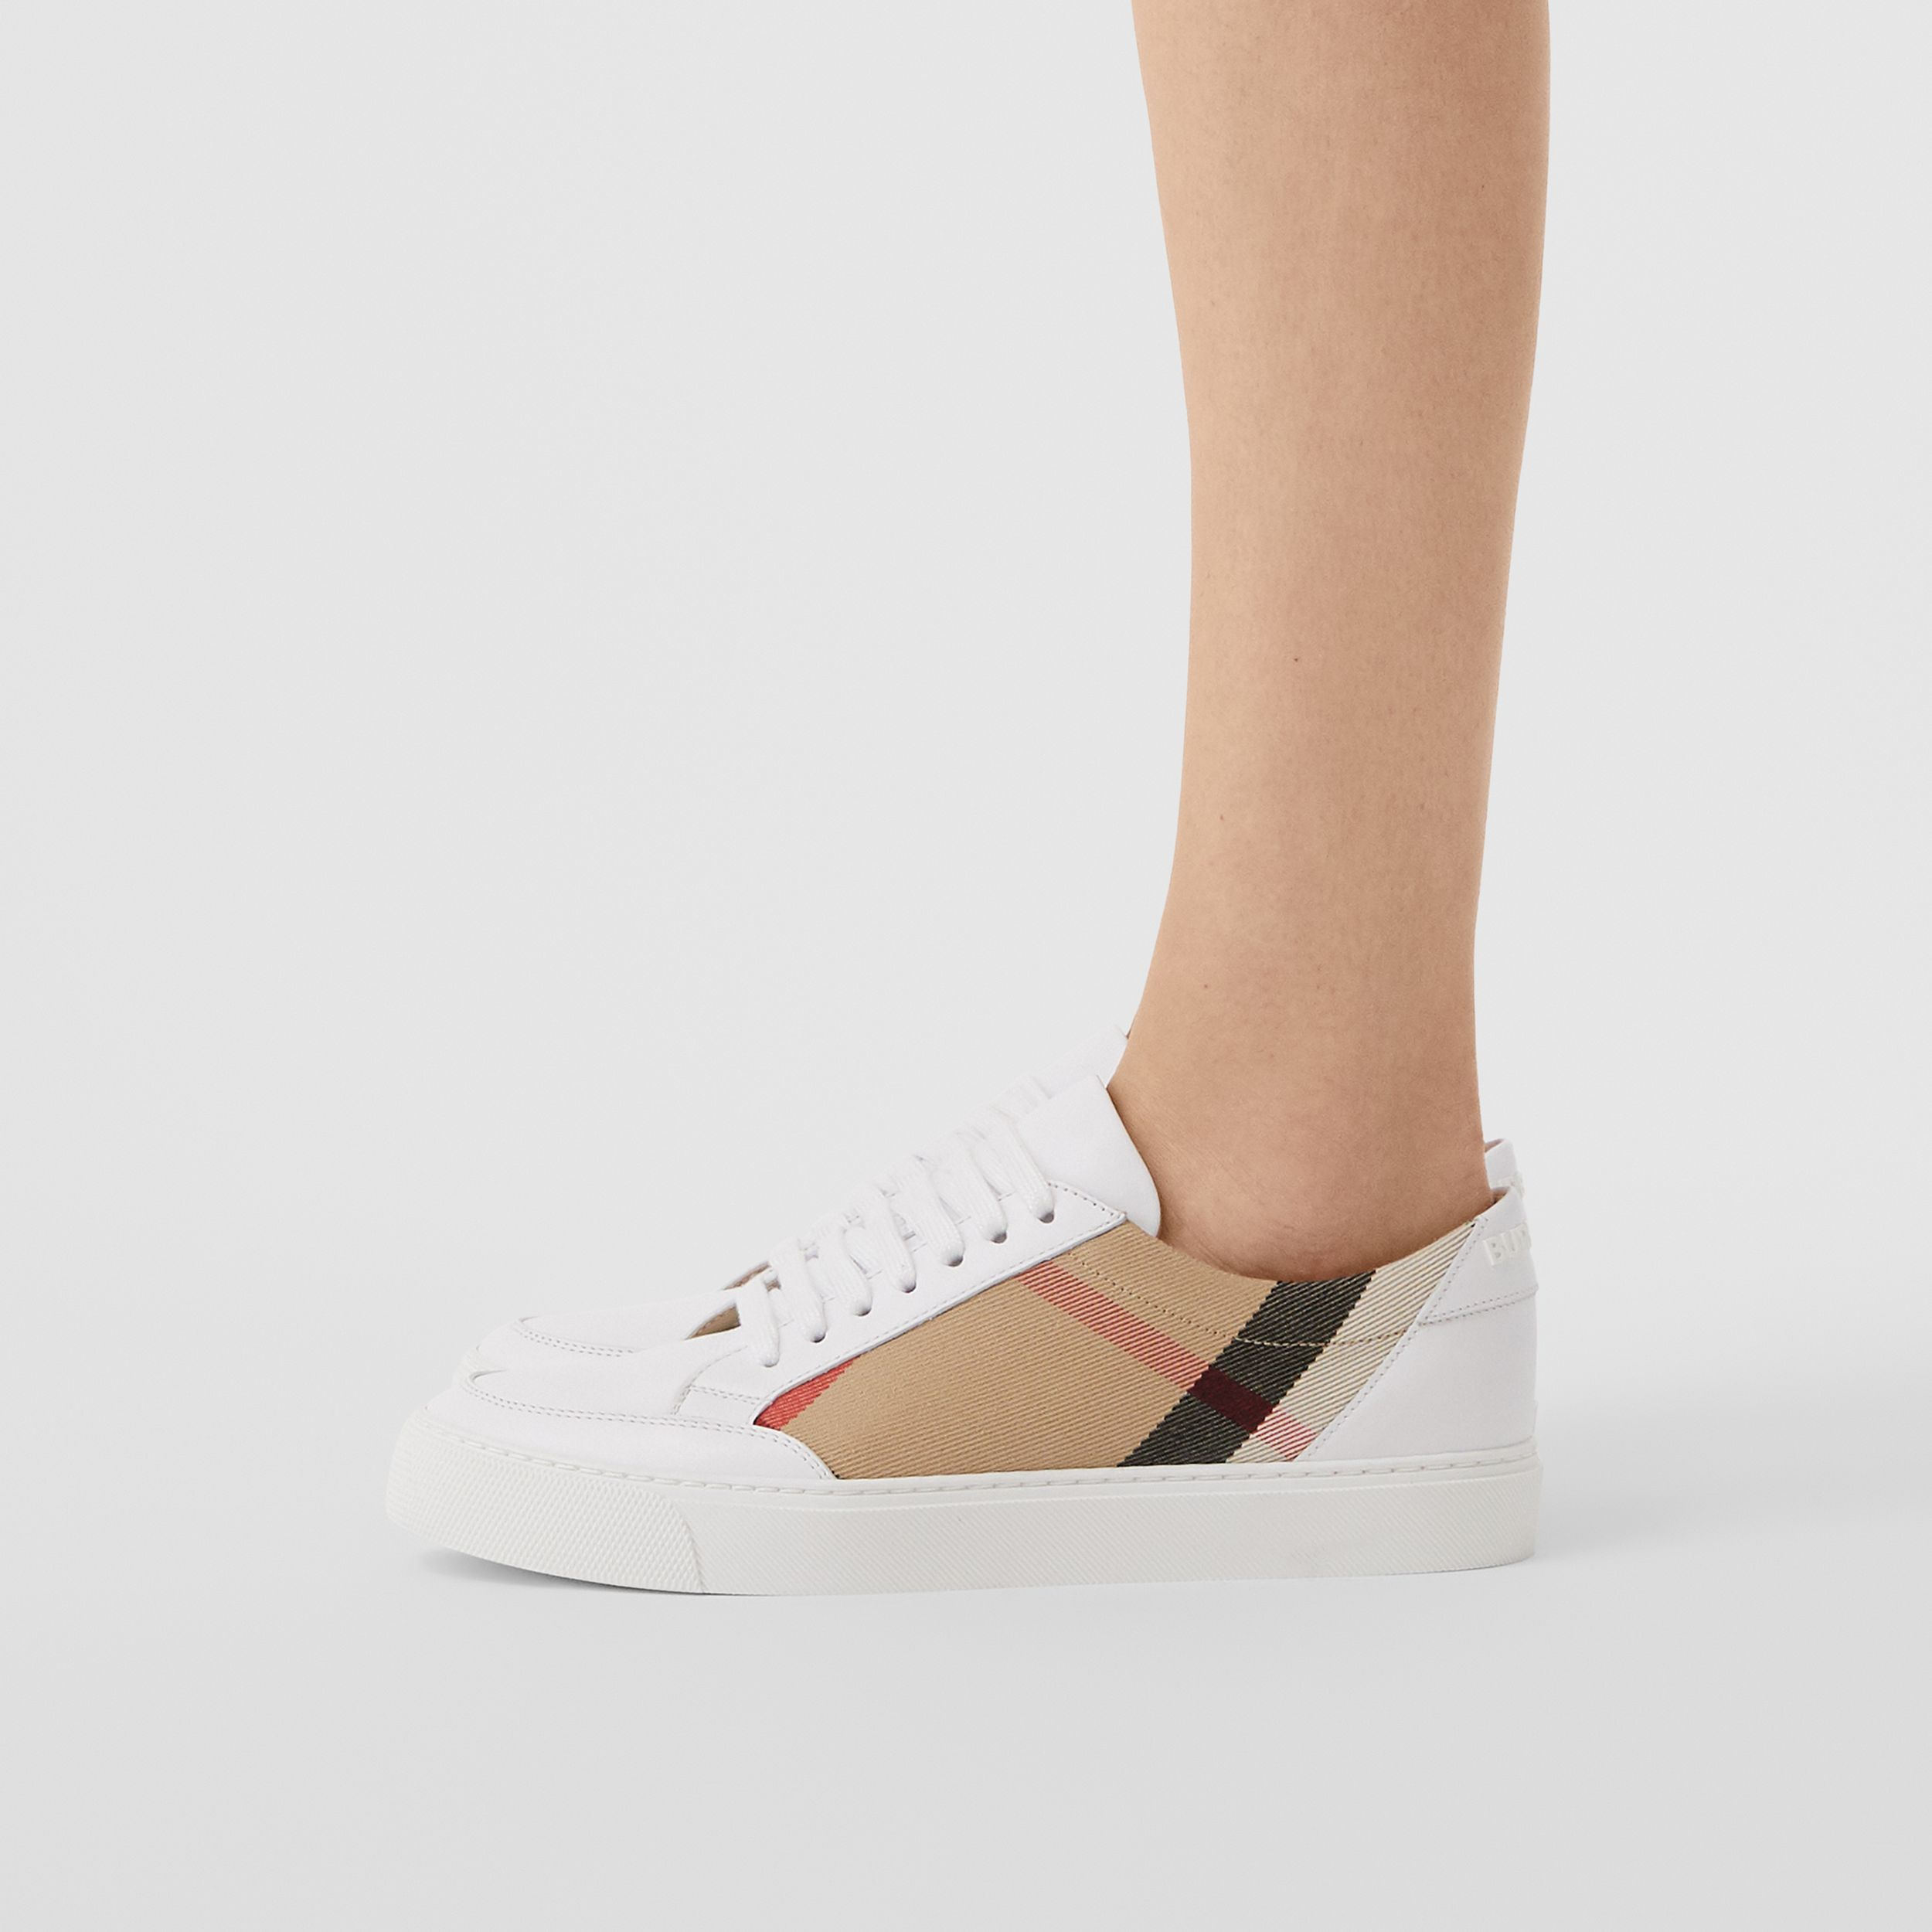 House Check and Leather Sneakers in Optic White - Women | Burberry - 3